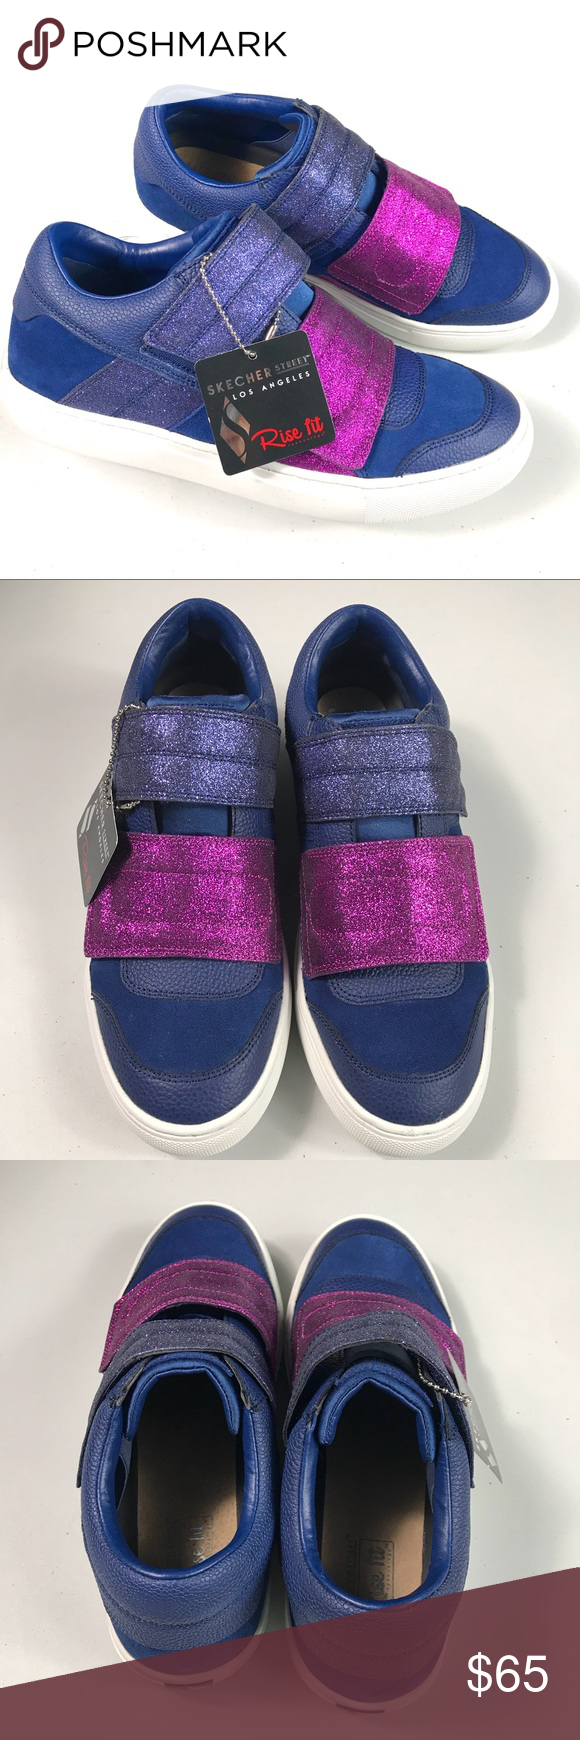 f2b0dfc73eee Skechers Blue/Pink Glitter Sneakers Size 8 NWT Skechers Women's Blue/Pink  Glitter Sneakers Size 8 Rise Fit LA Brand New with tag New with tag Glitter  effect ...